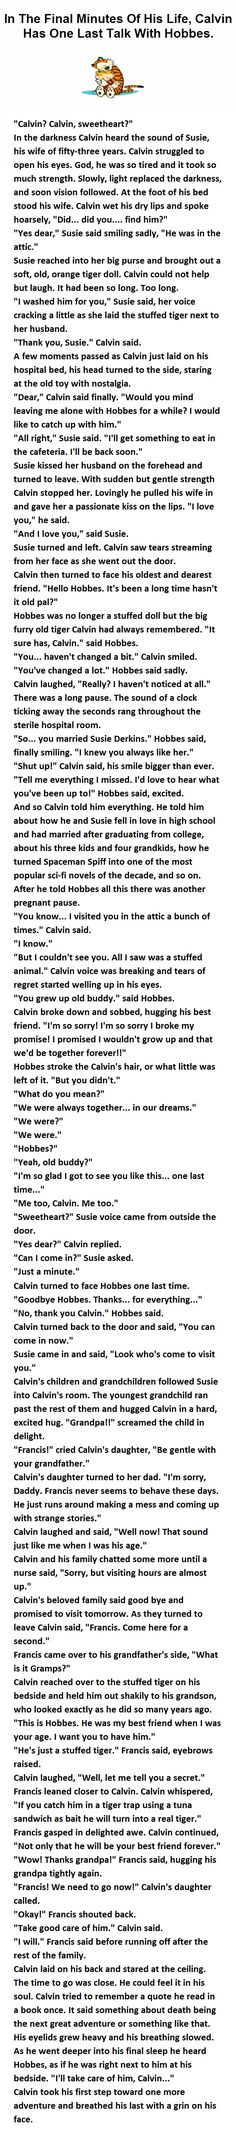 In The Final Moments Of His Life, Calvin Has One More Talk With Hobbes #calvin #hobbes #awe